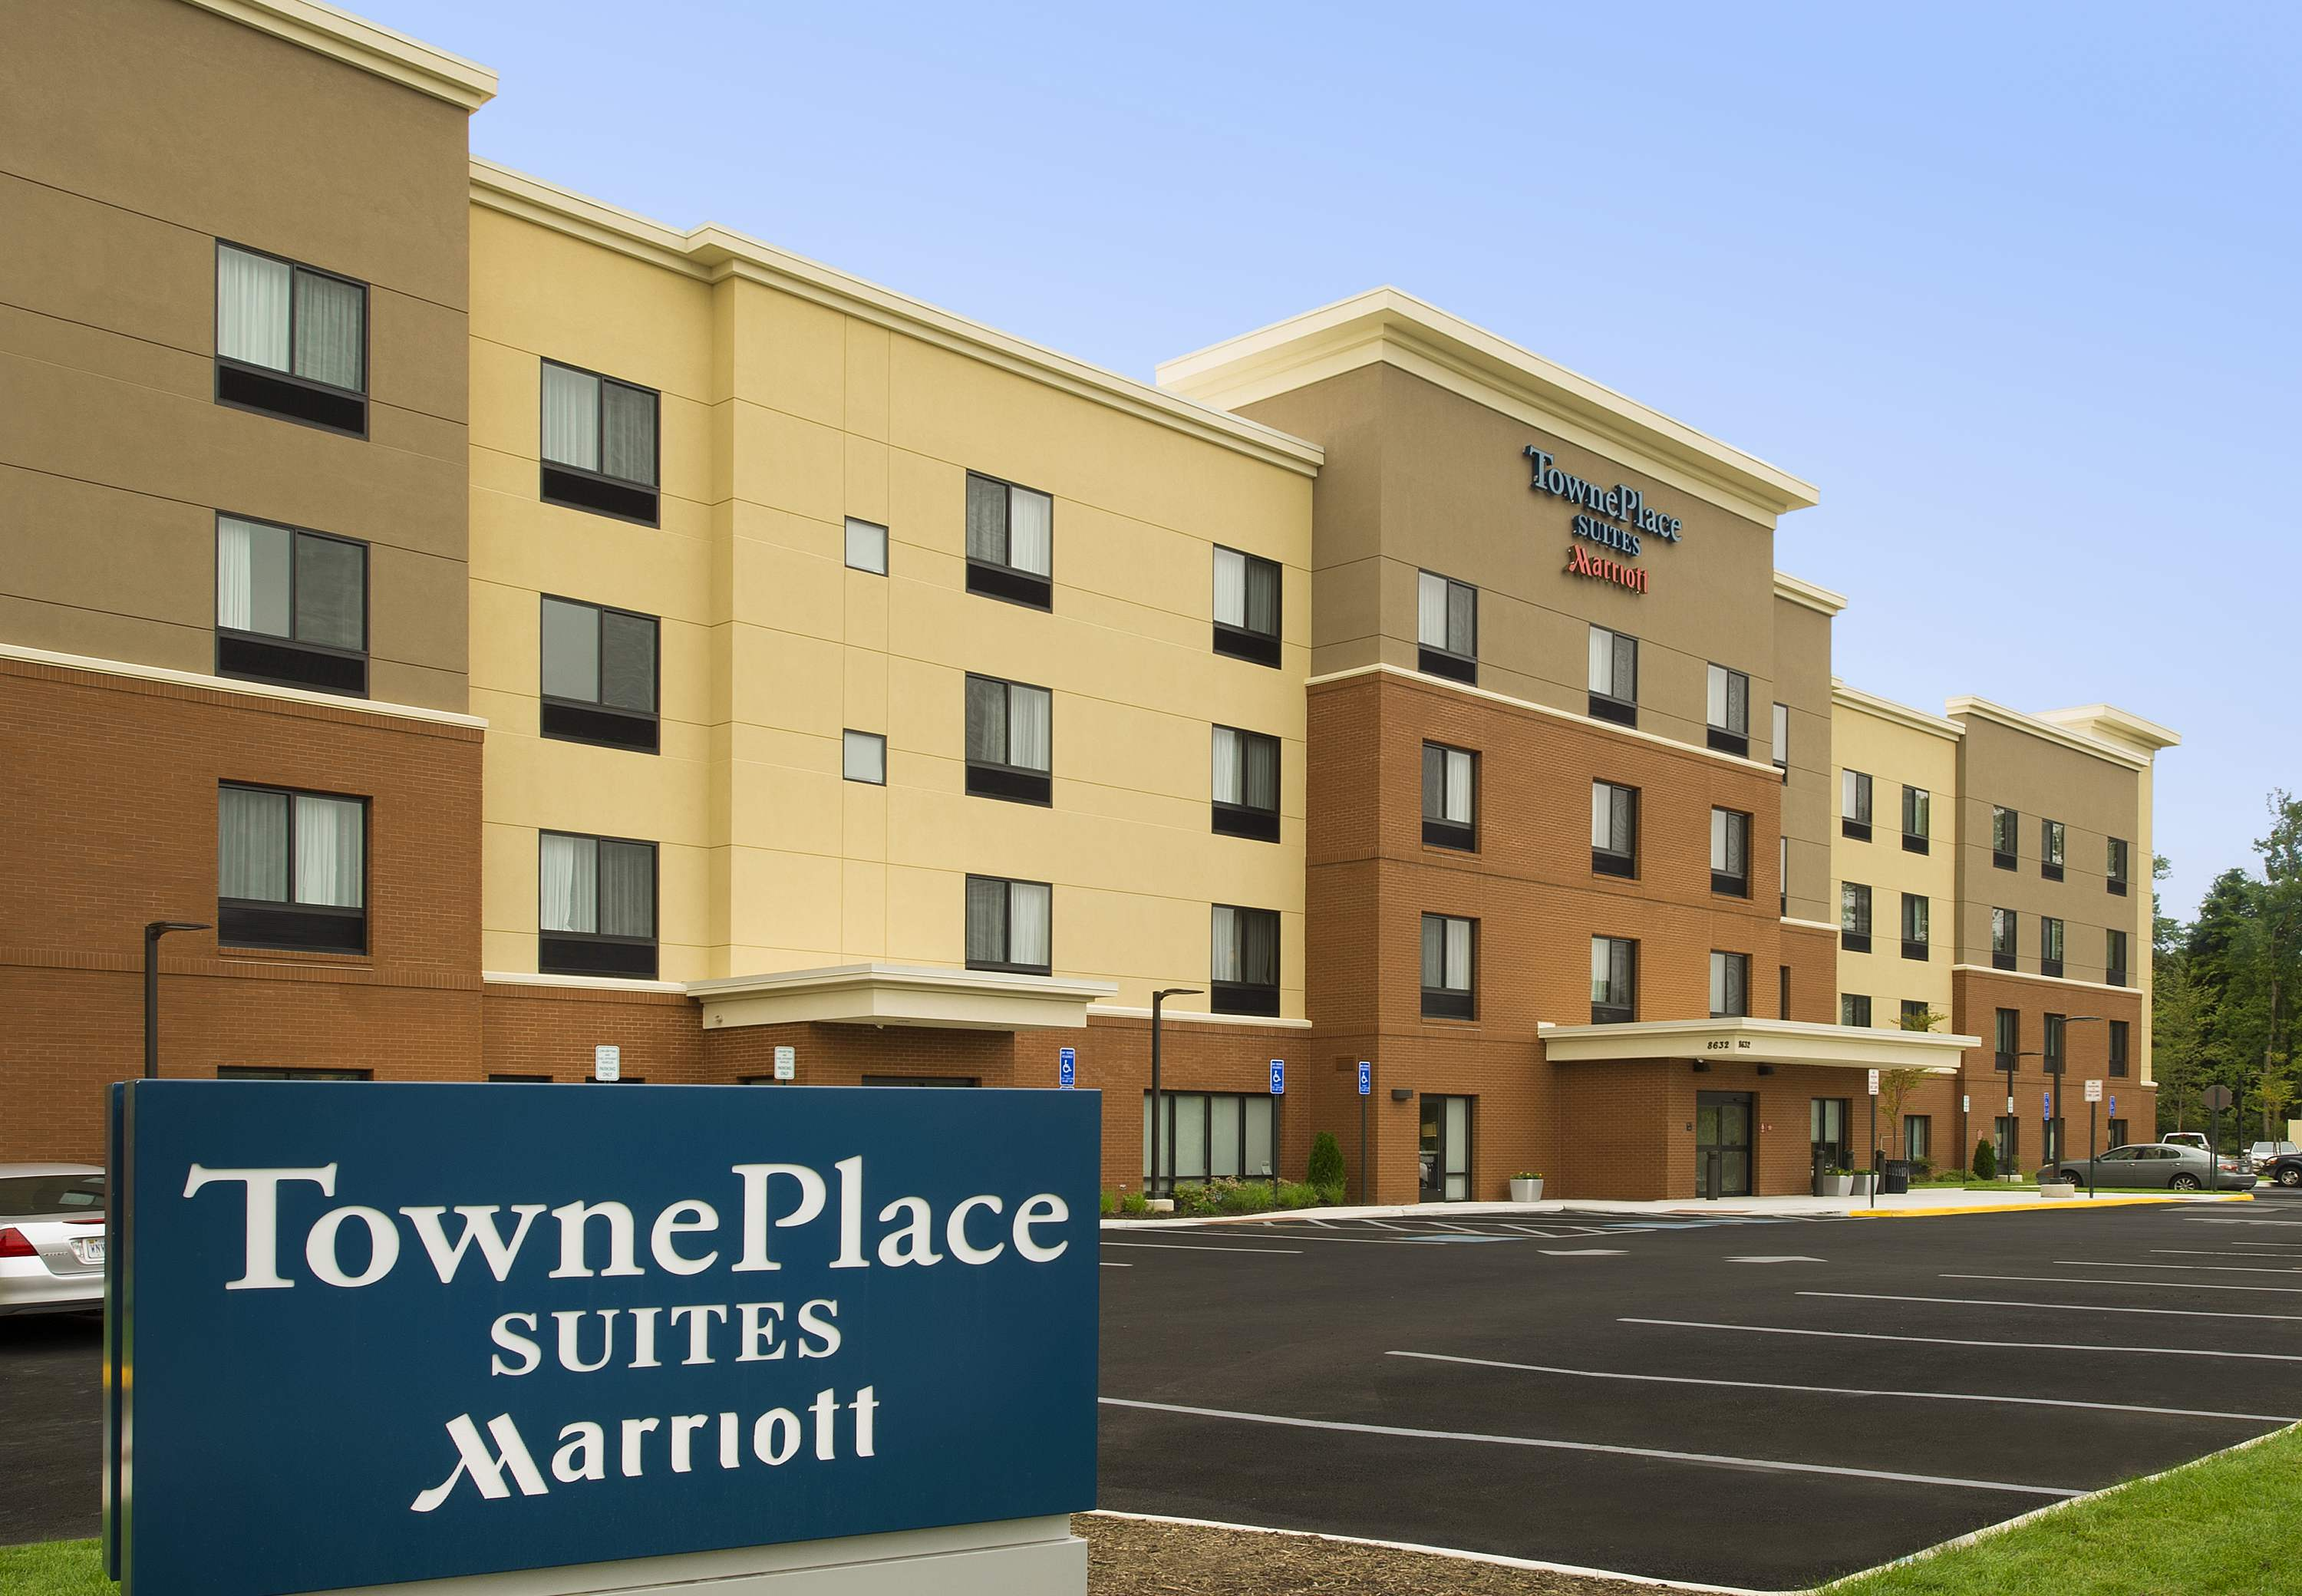 TownePlace Suites by Marriott Alexandria Fort Belvoir image 0